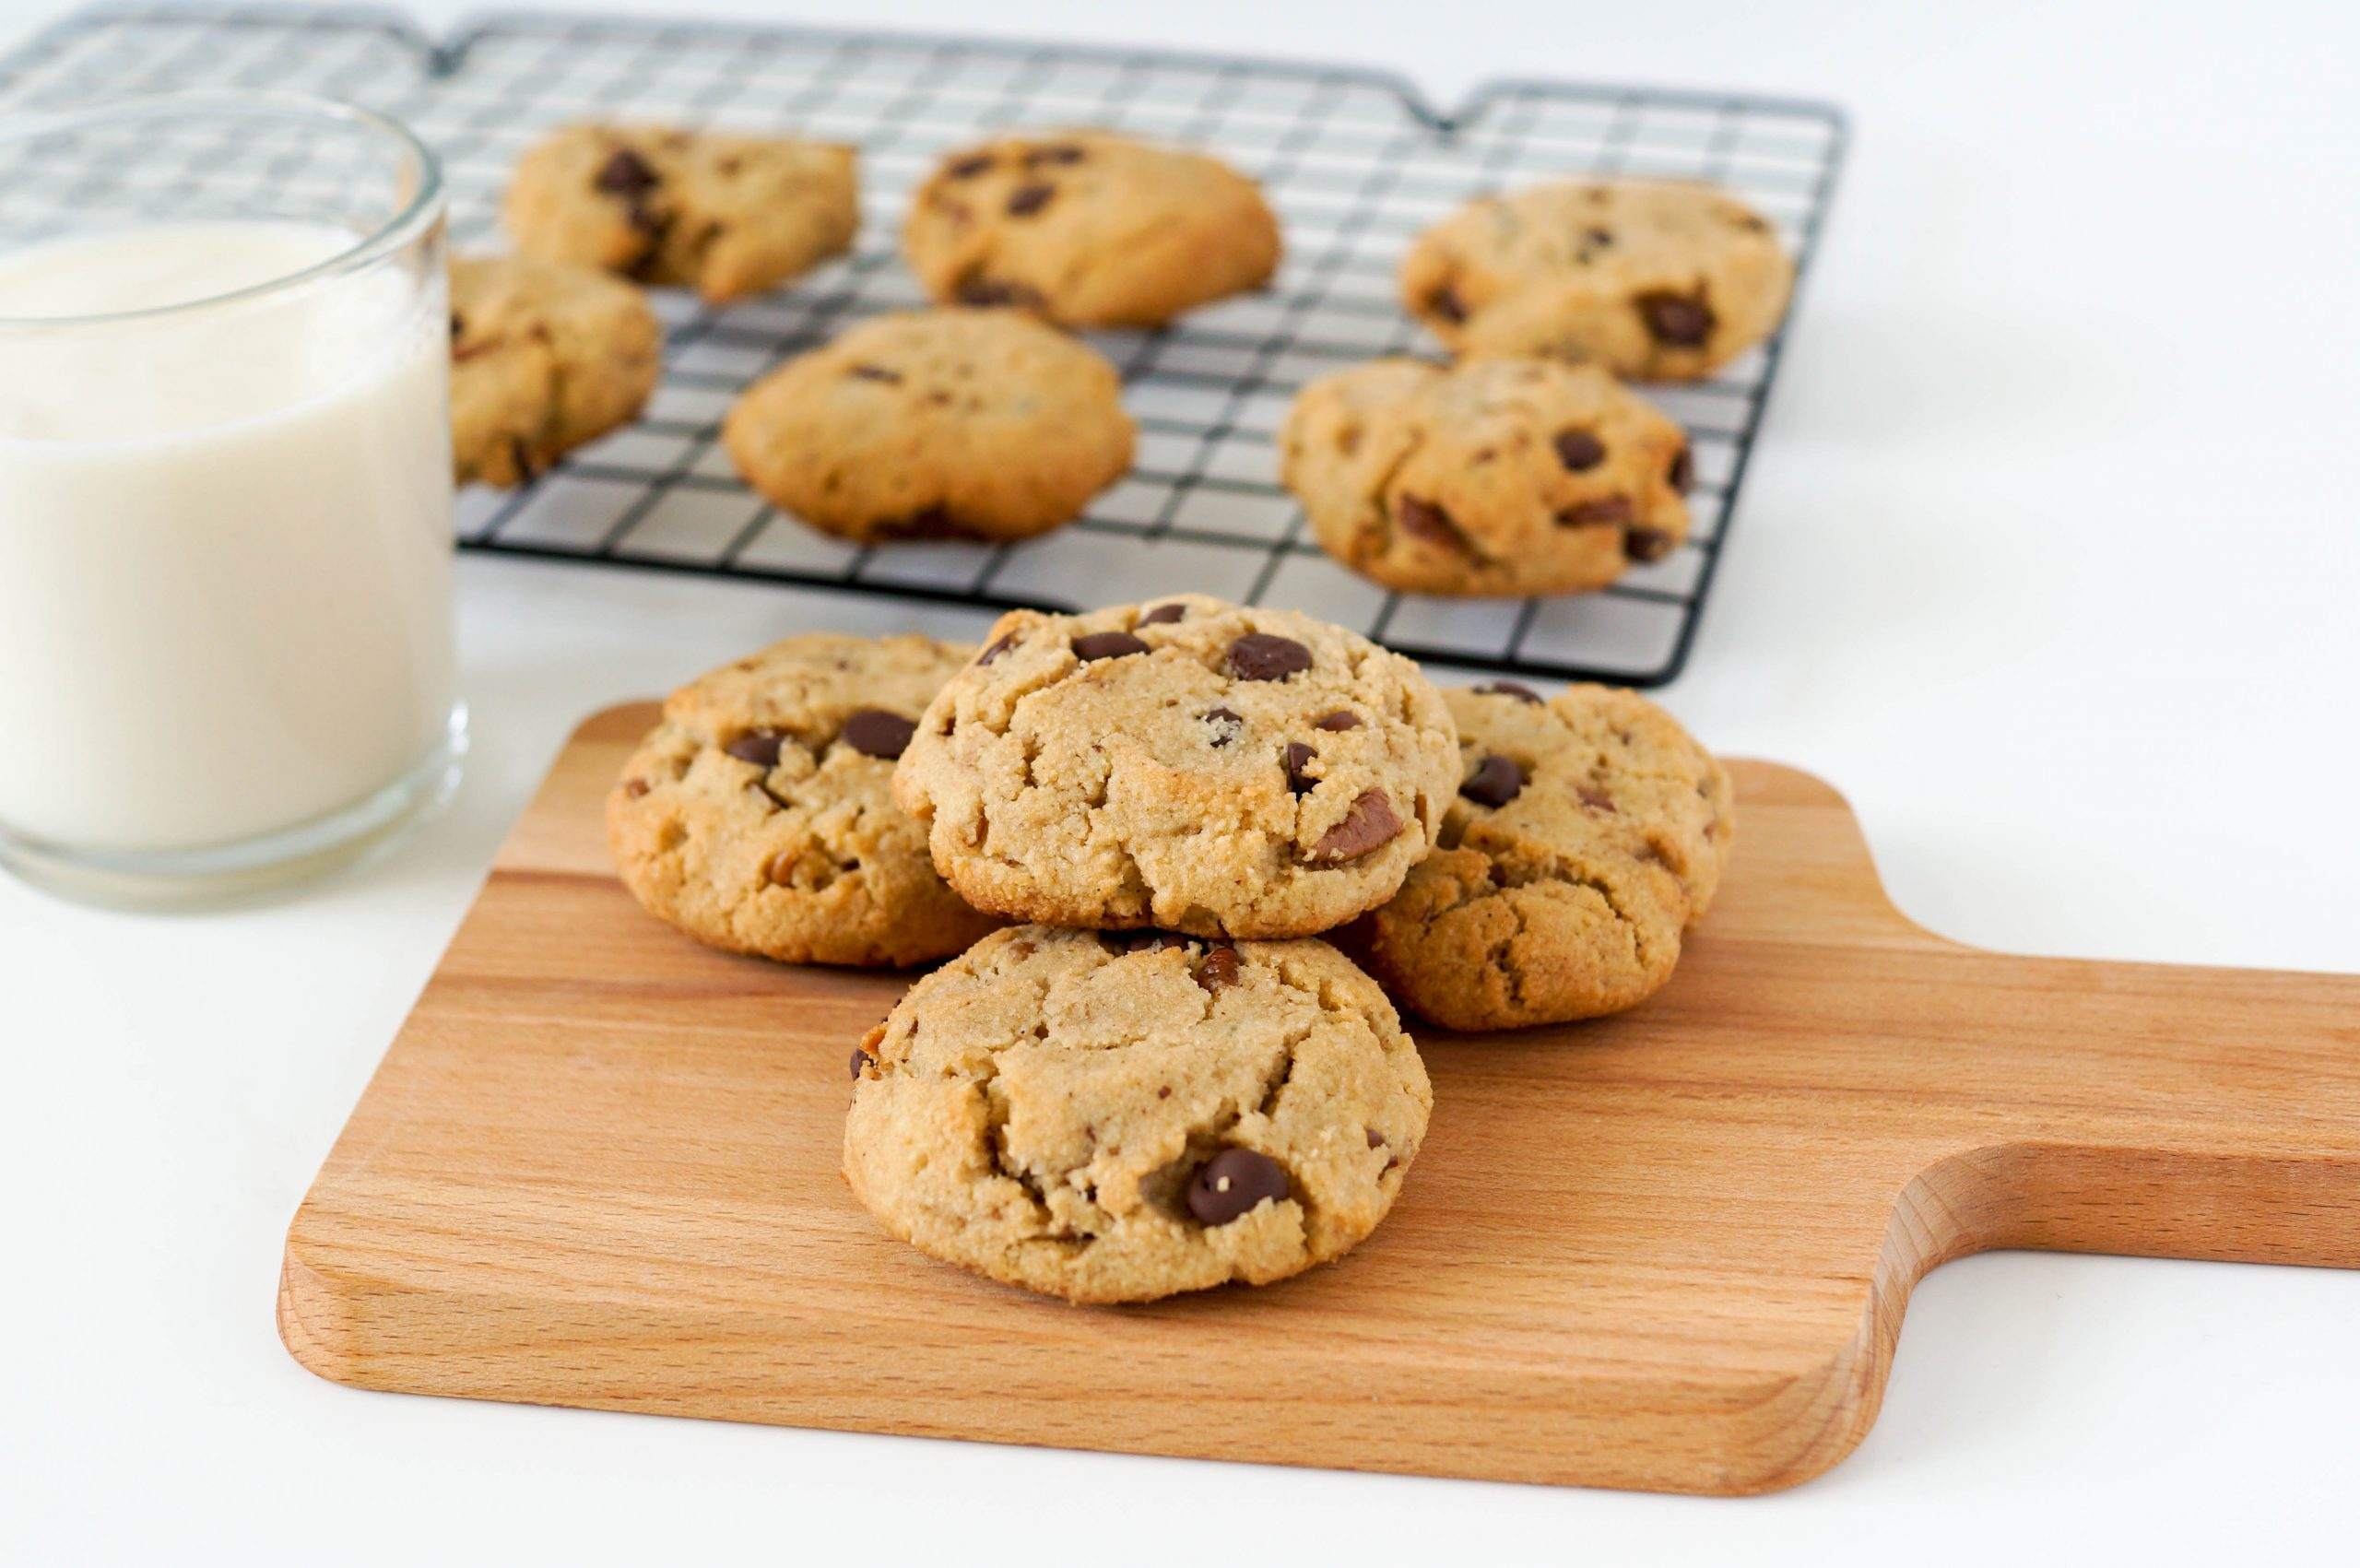 Ultimate Soft & Gluten-free Chocolate Pecan Cookies